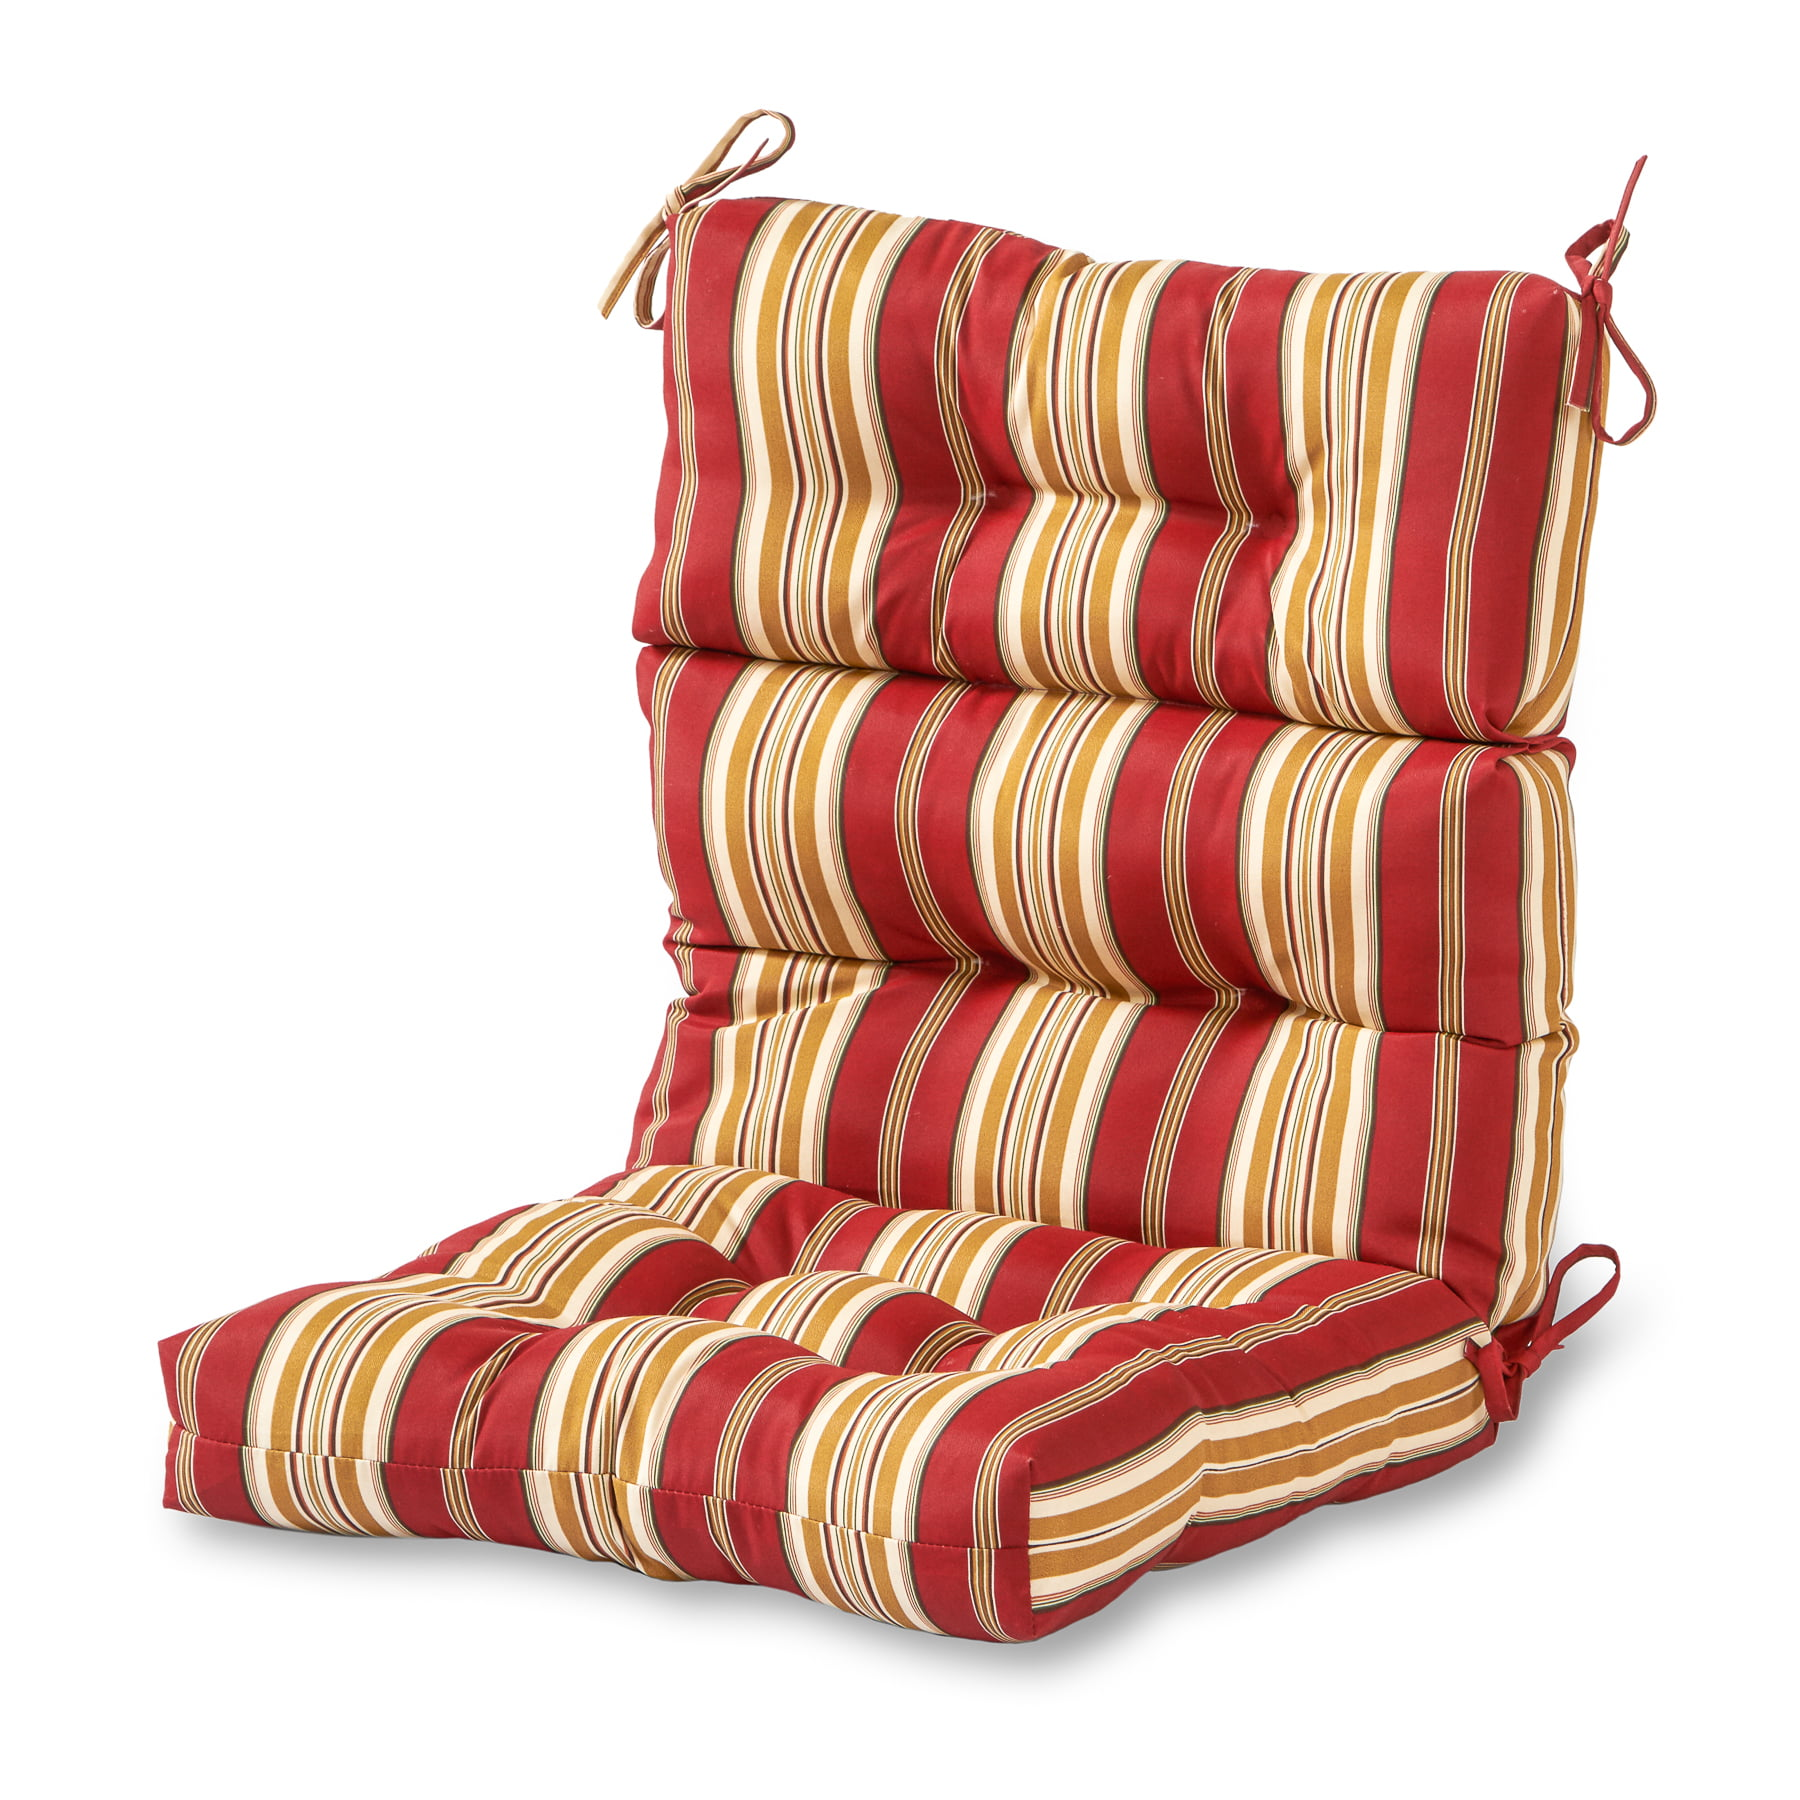 Greendale Home Fashions Roma Stripe Outdoor High Back Chair Cushion